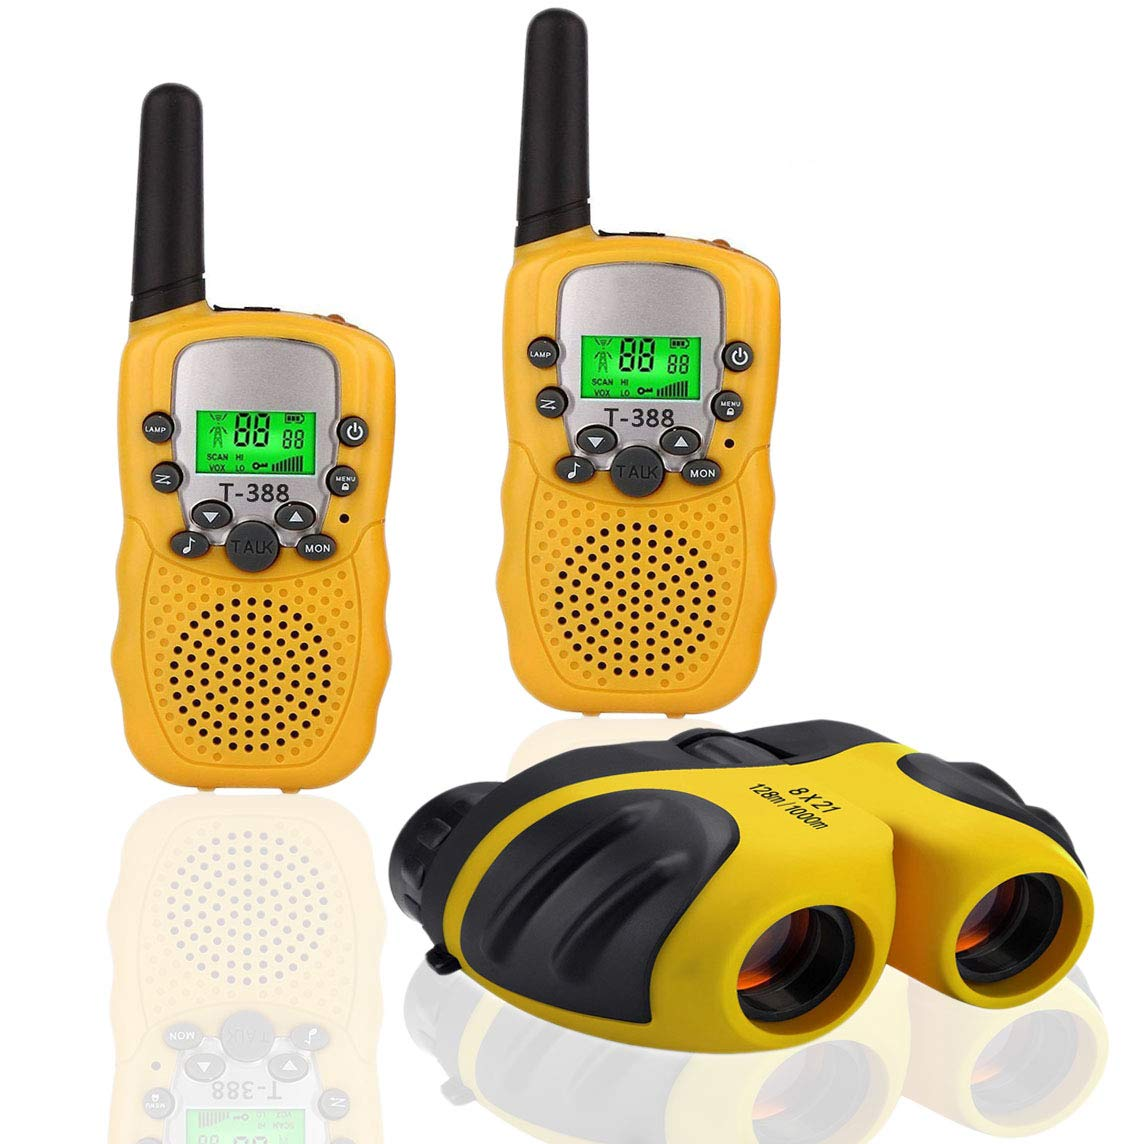 XIYITOY Best Gifts for Kid,Gifts for Girl 4-8 Year Old, Walkie Talkies Toys for Children with Built in Flash Light, 8 X 21 Kids Binoculars for Children,Cool Toys for 4-5 Year Old Boys,1 Parir(Yellow)